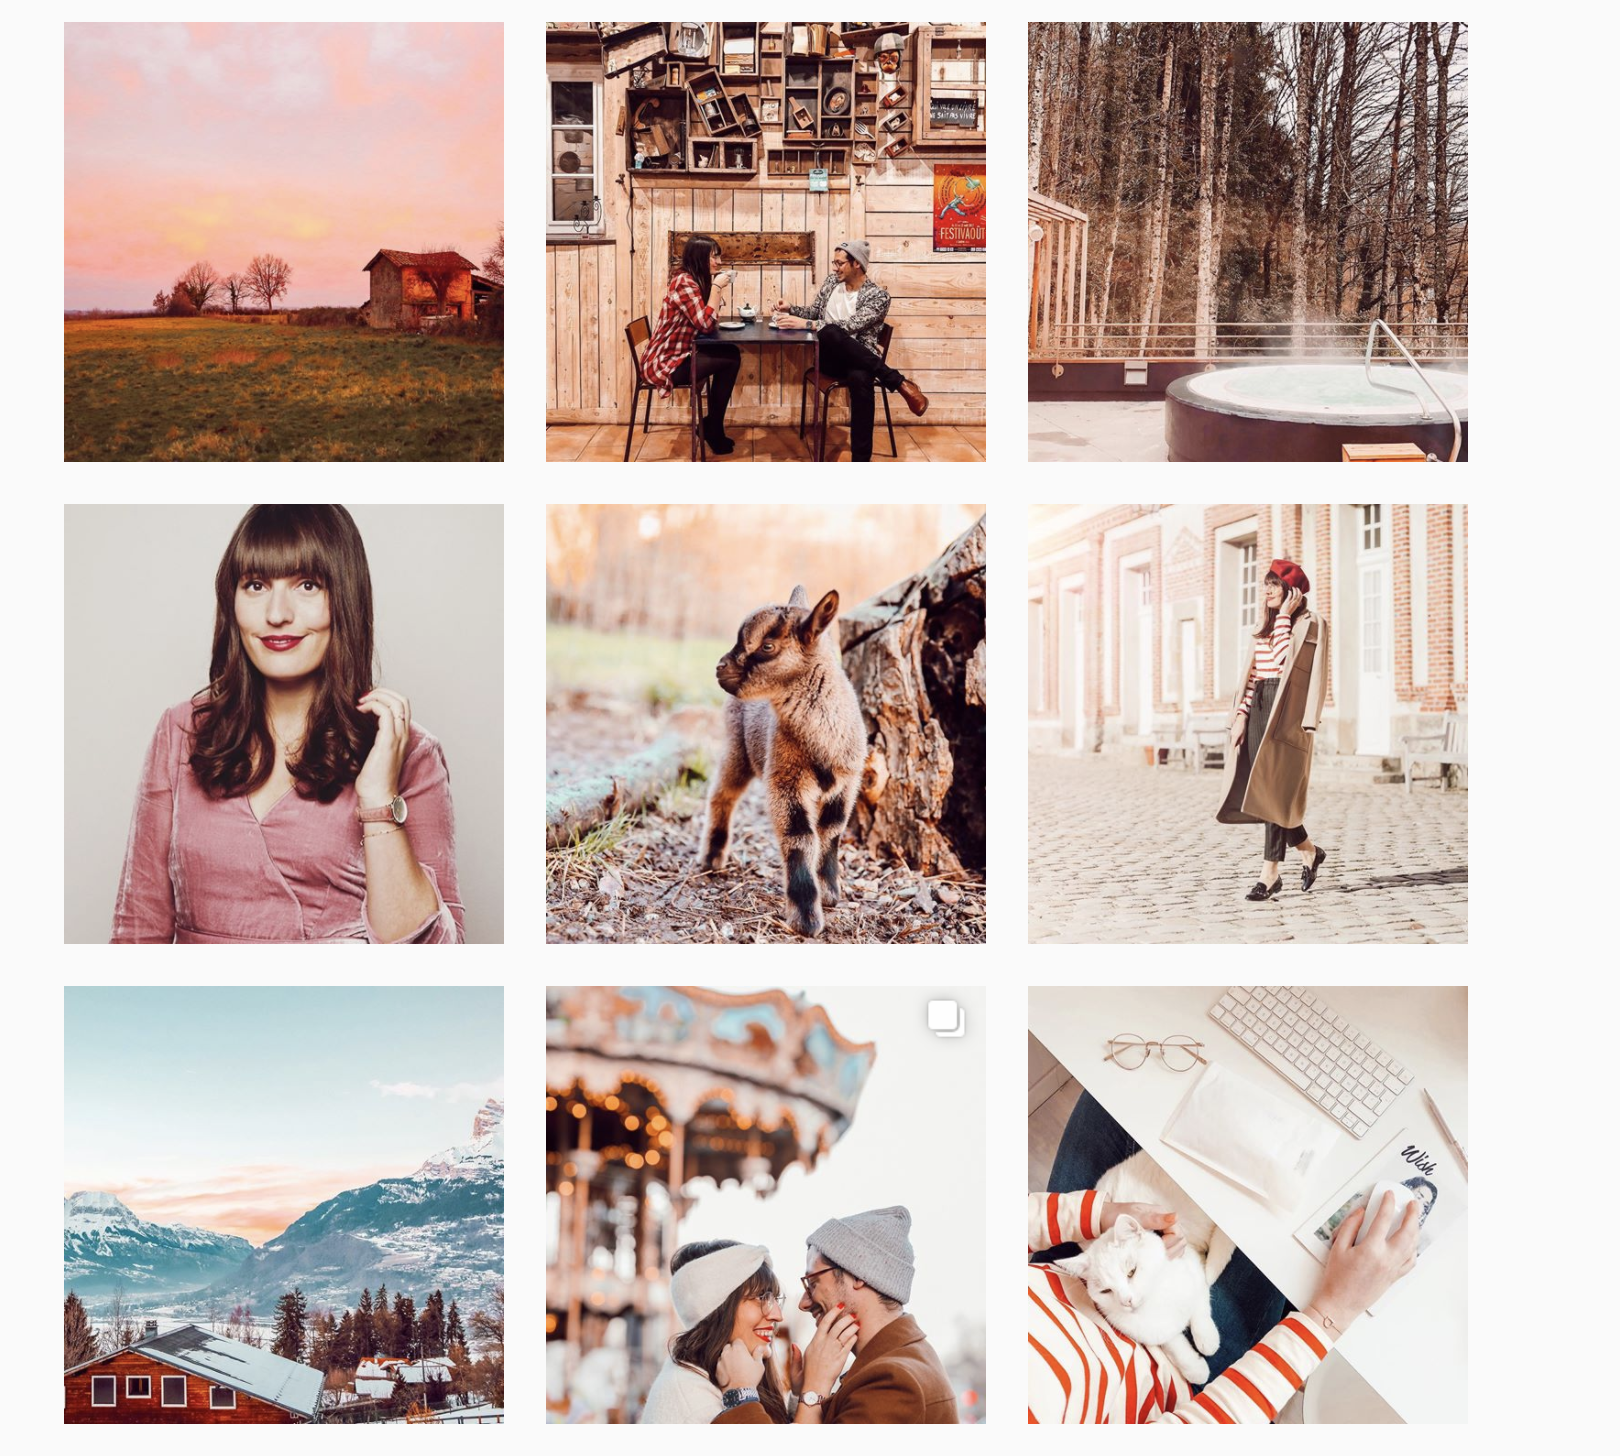 Instagram Feed Ideas: Ellesen Parlent - Schedugram